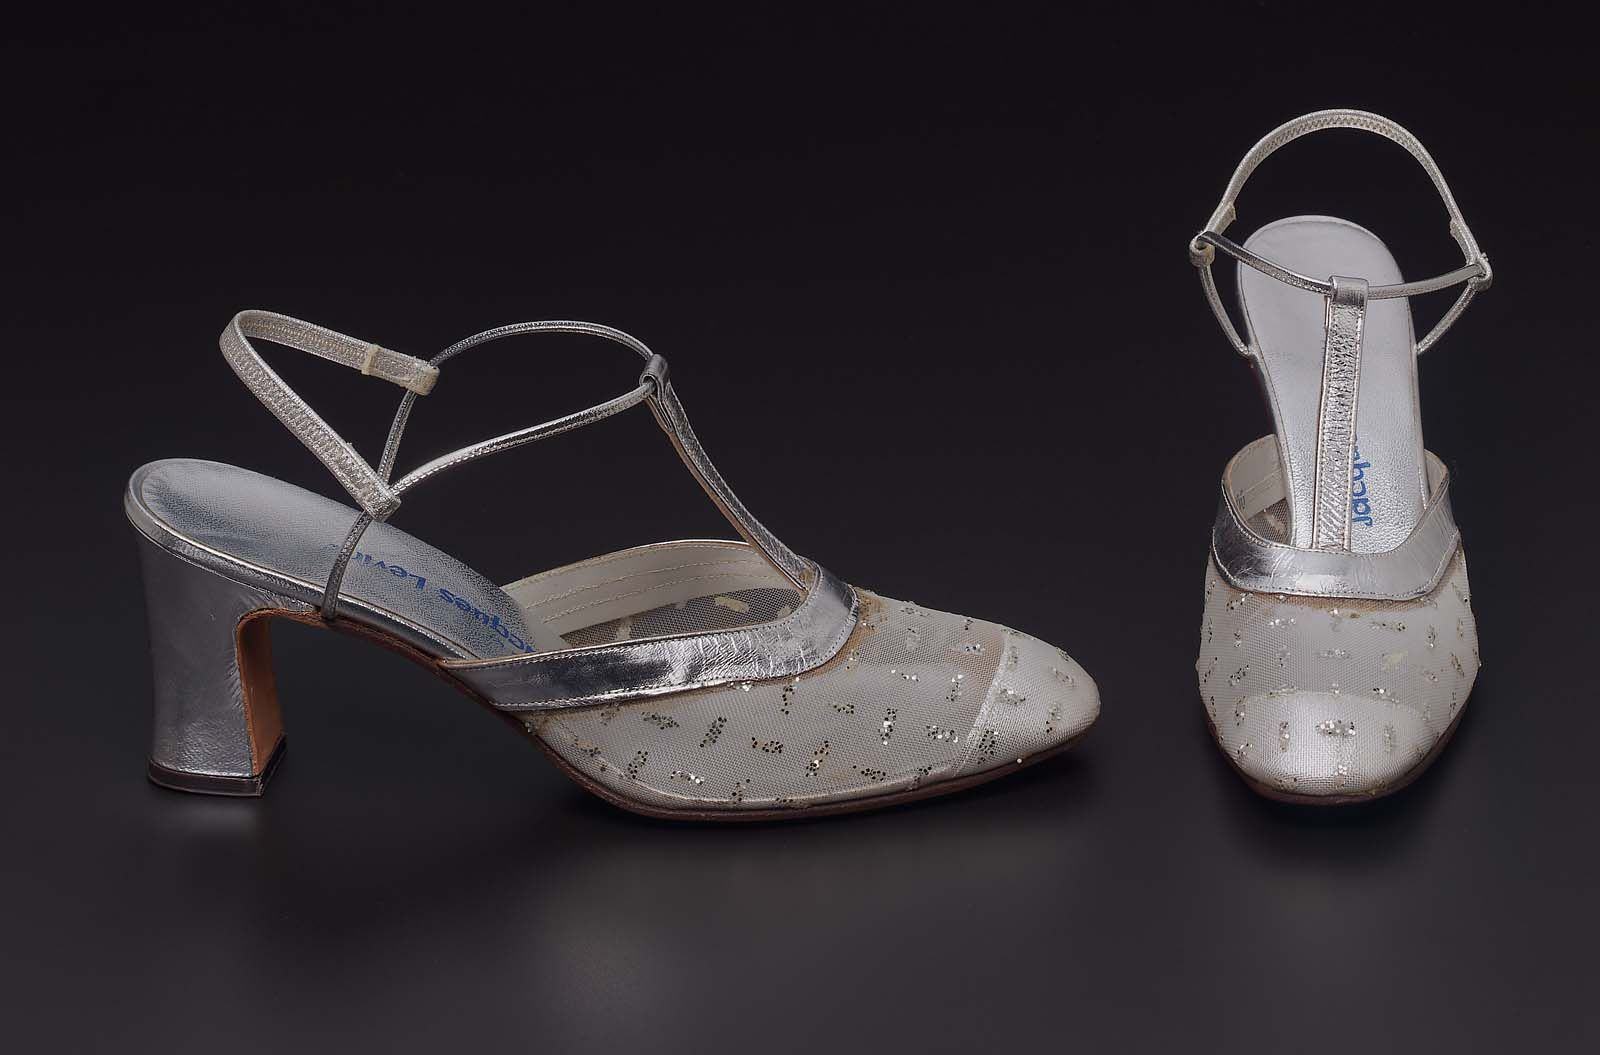 1968-1972, America - Slippers - Nylon straw woven, silvered leather, mirrored sequins, elastic, and leather sole